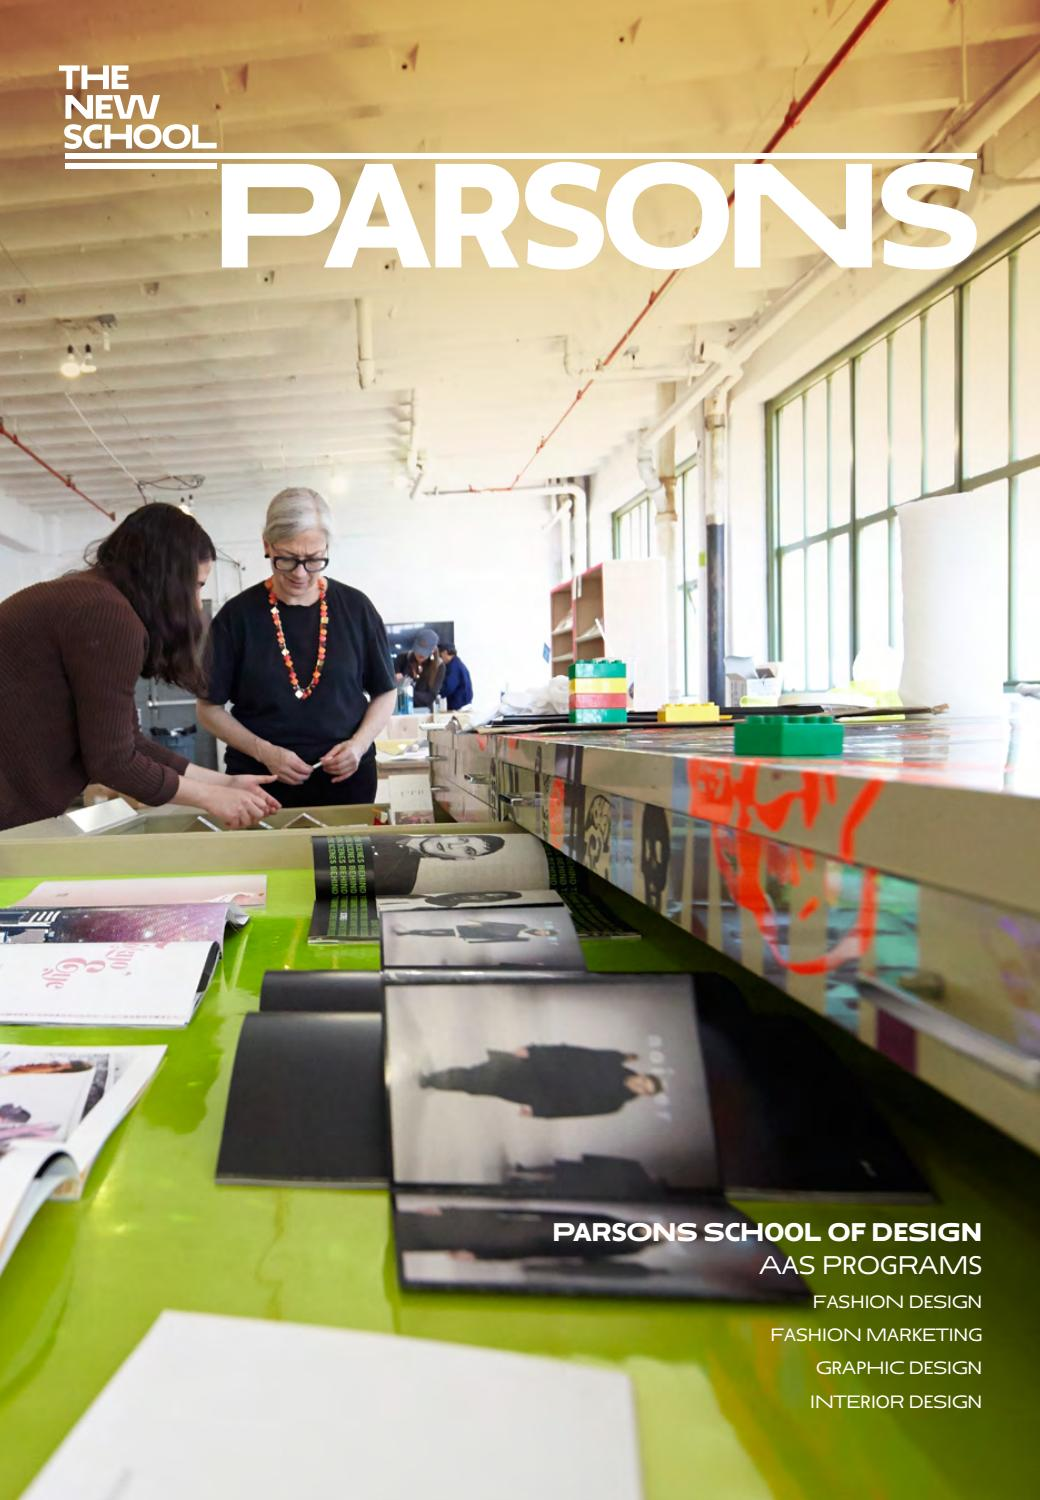 2016 Parsons Aas Viewbook By The New School Issuu